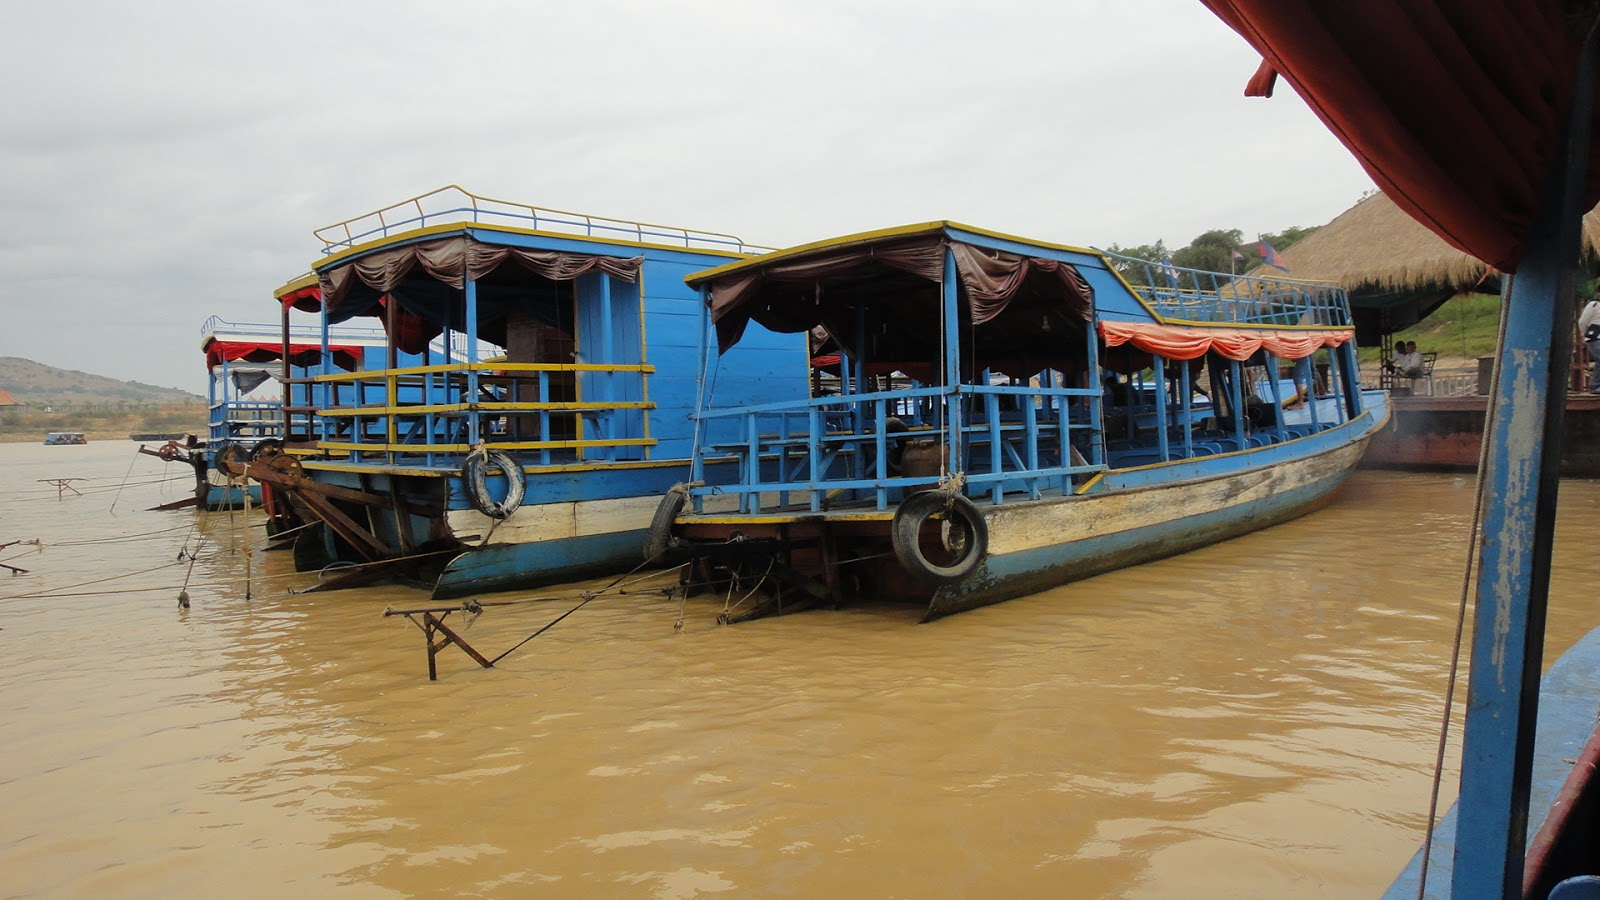 How to Get To Battambang Boat - Angkor Focus Travel